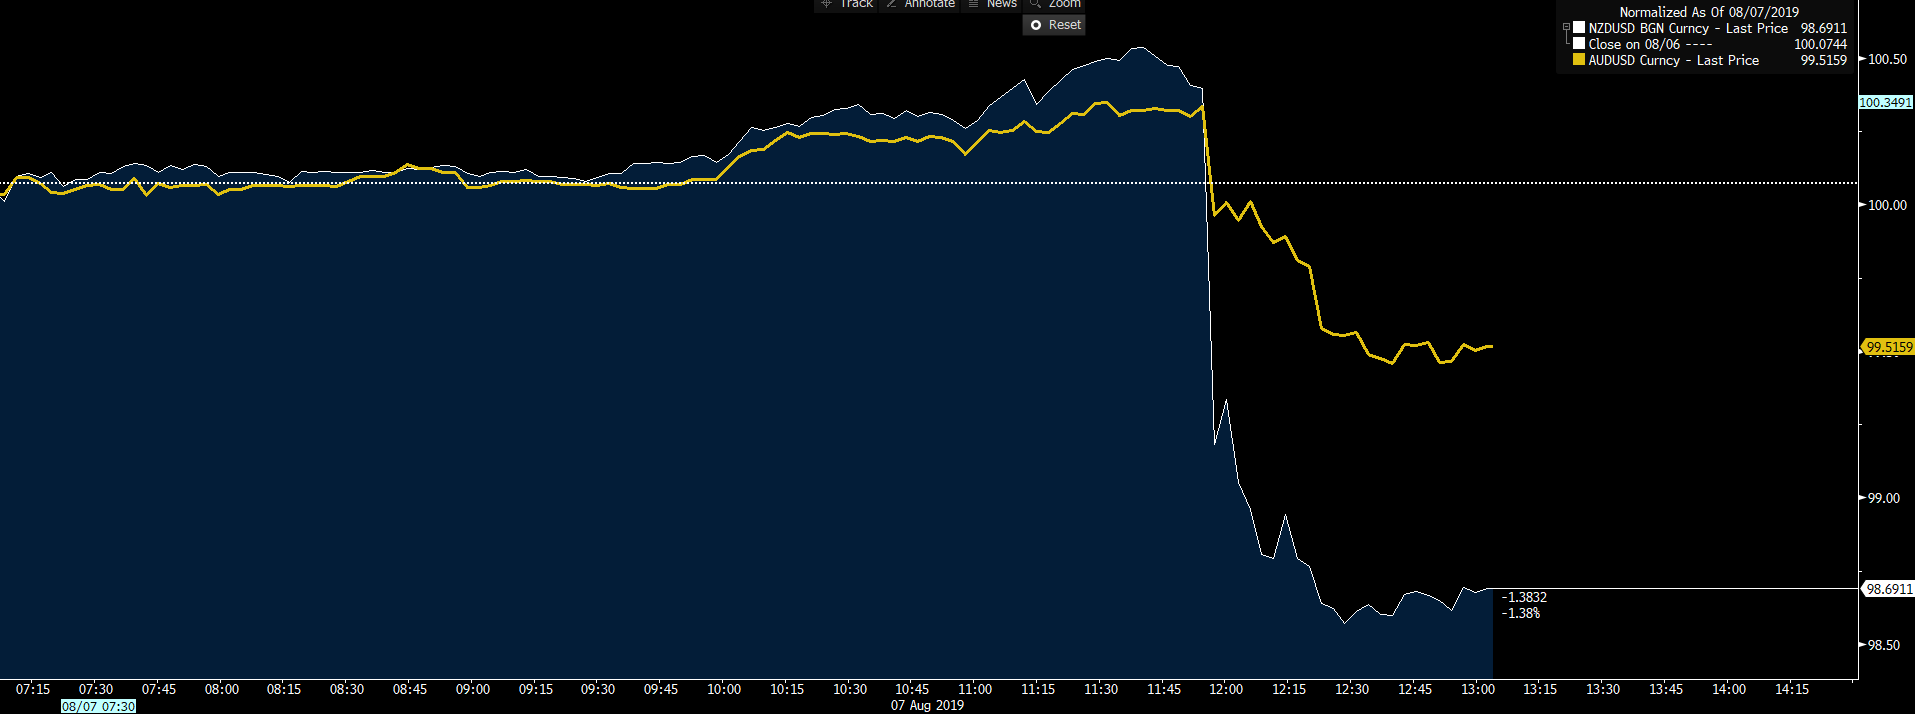 White: NZDUSD. Yellow: AUDUSD.